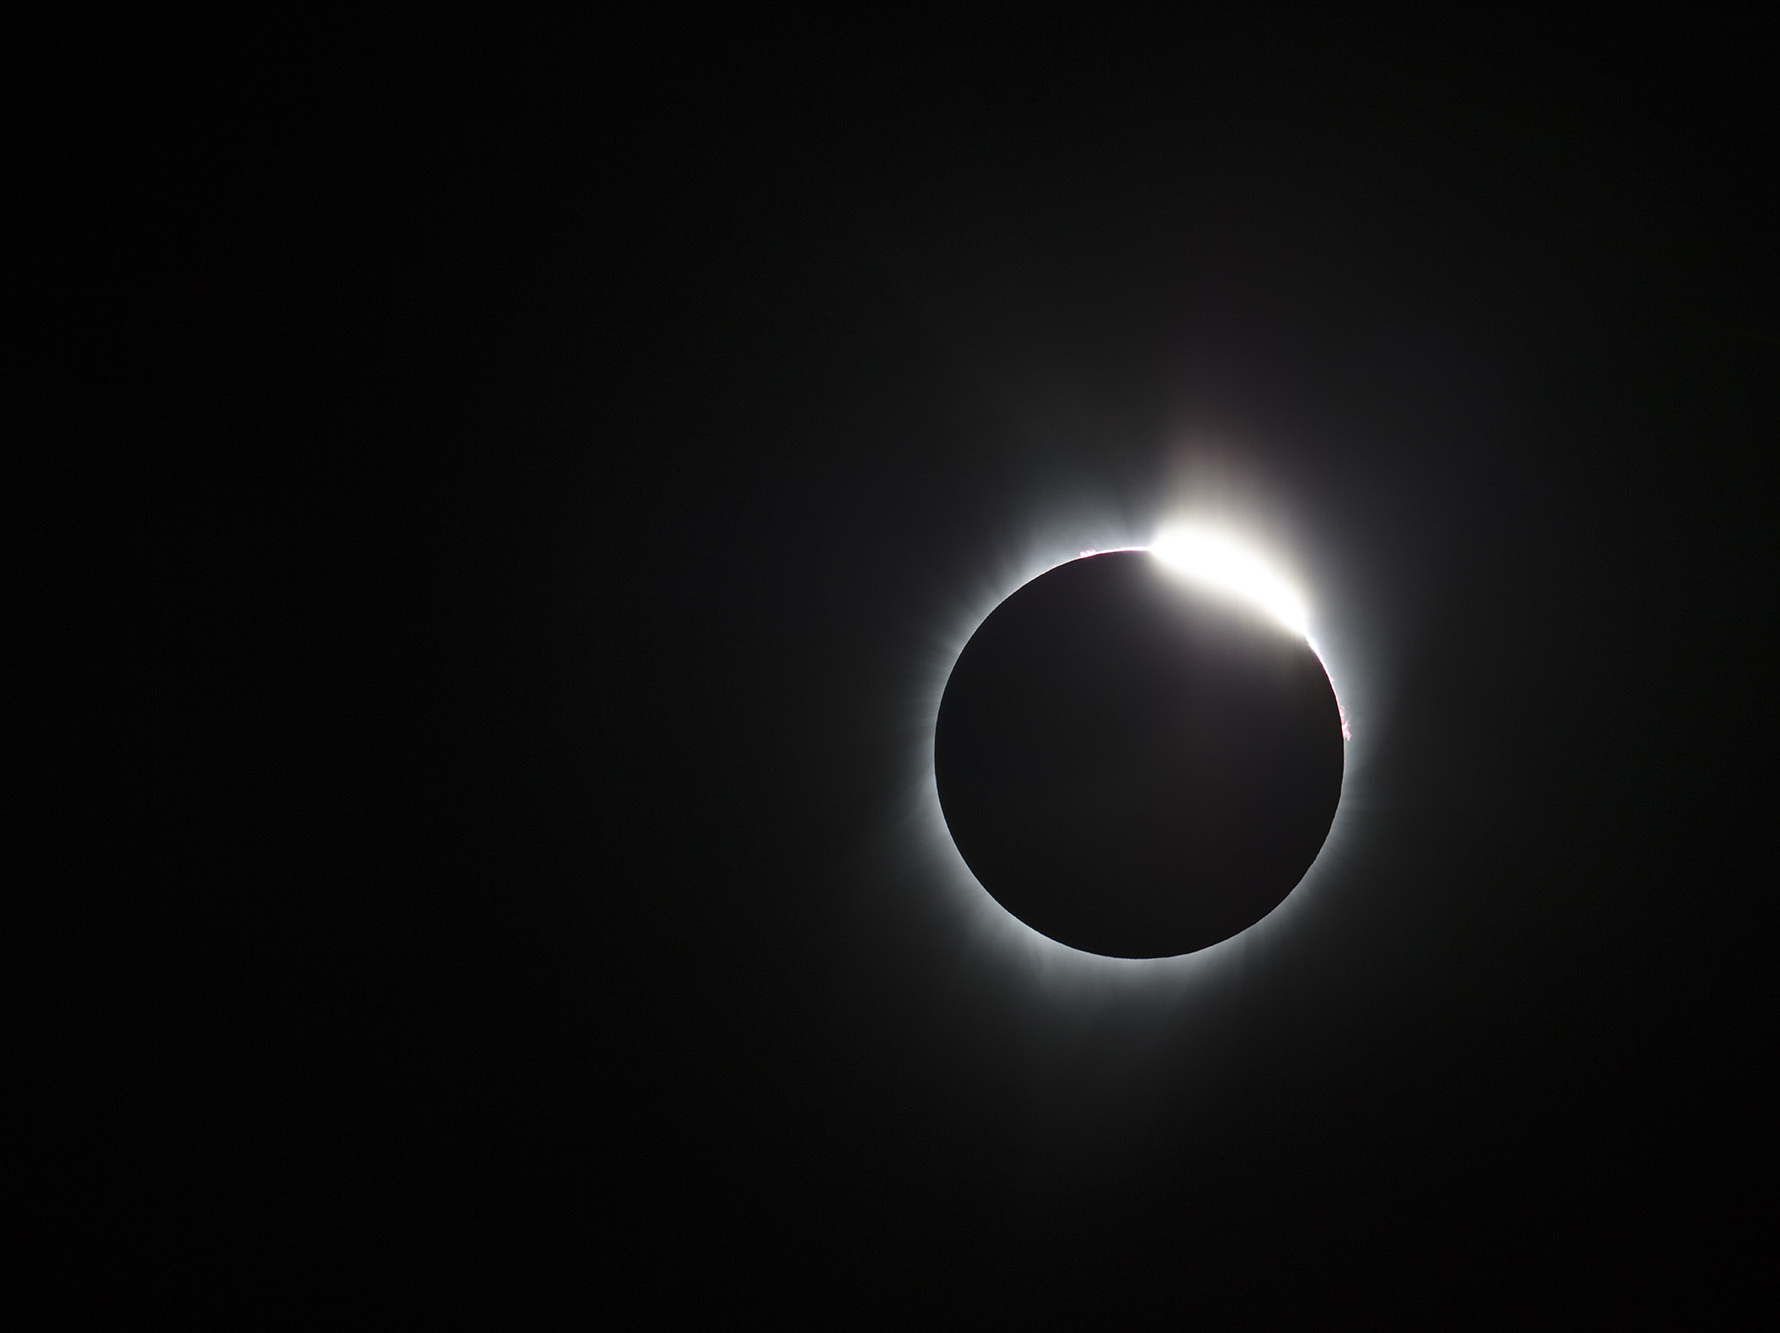 Solar eclipse can damage retina of human eye